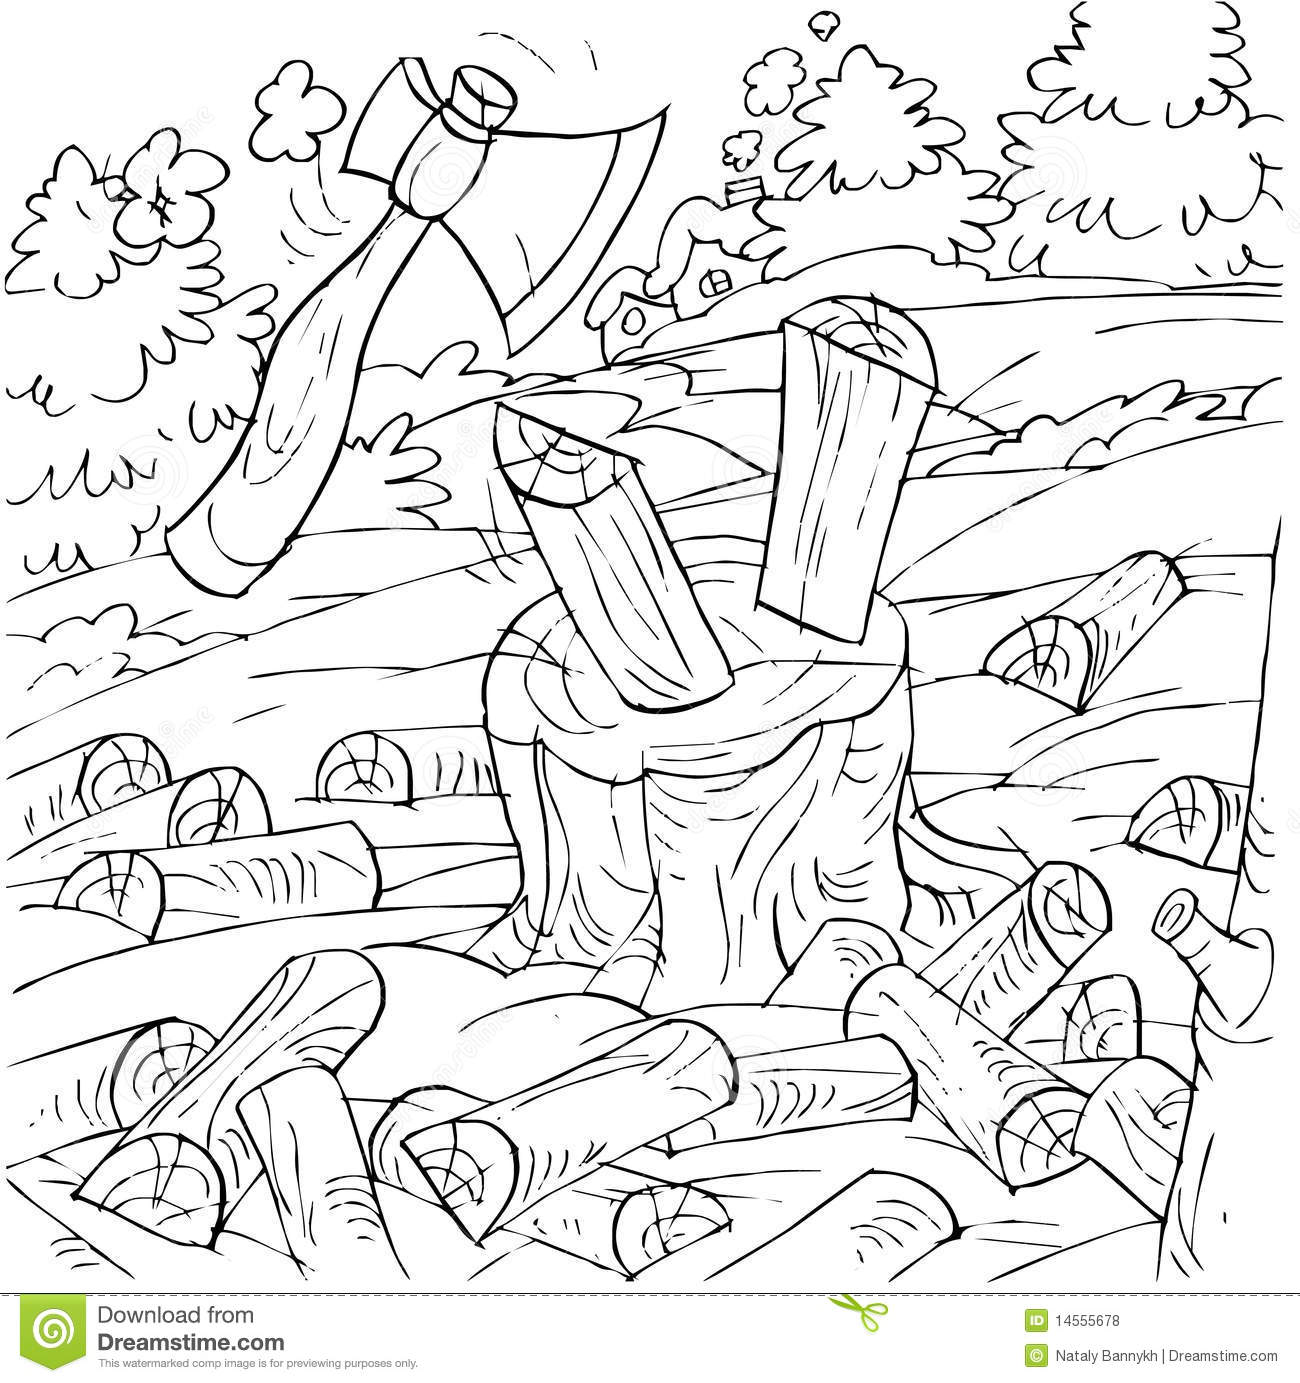 Chopping Wood Coloring Page Coloring Coloring Pages